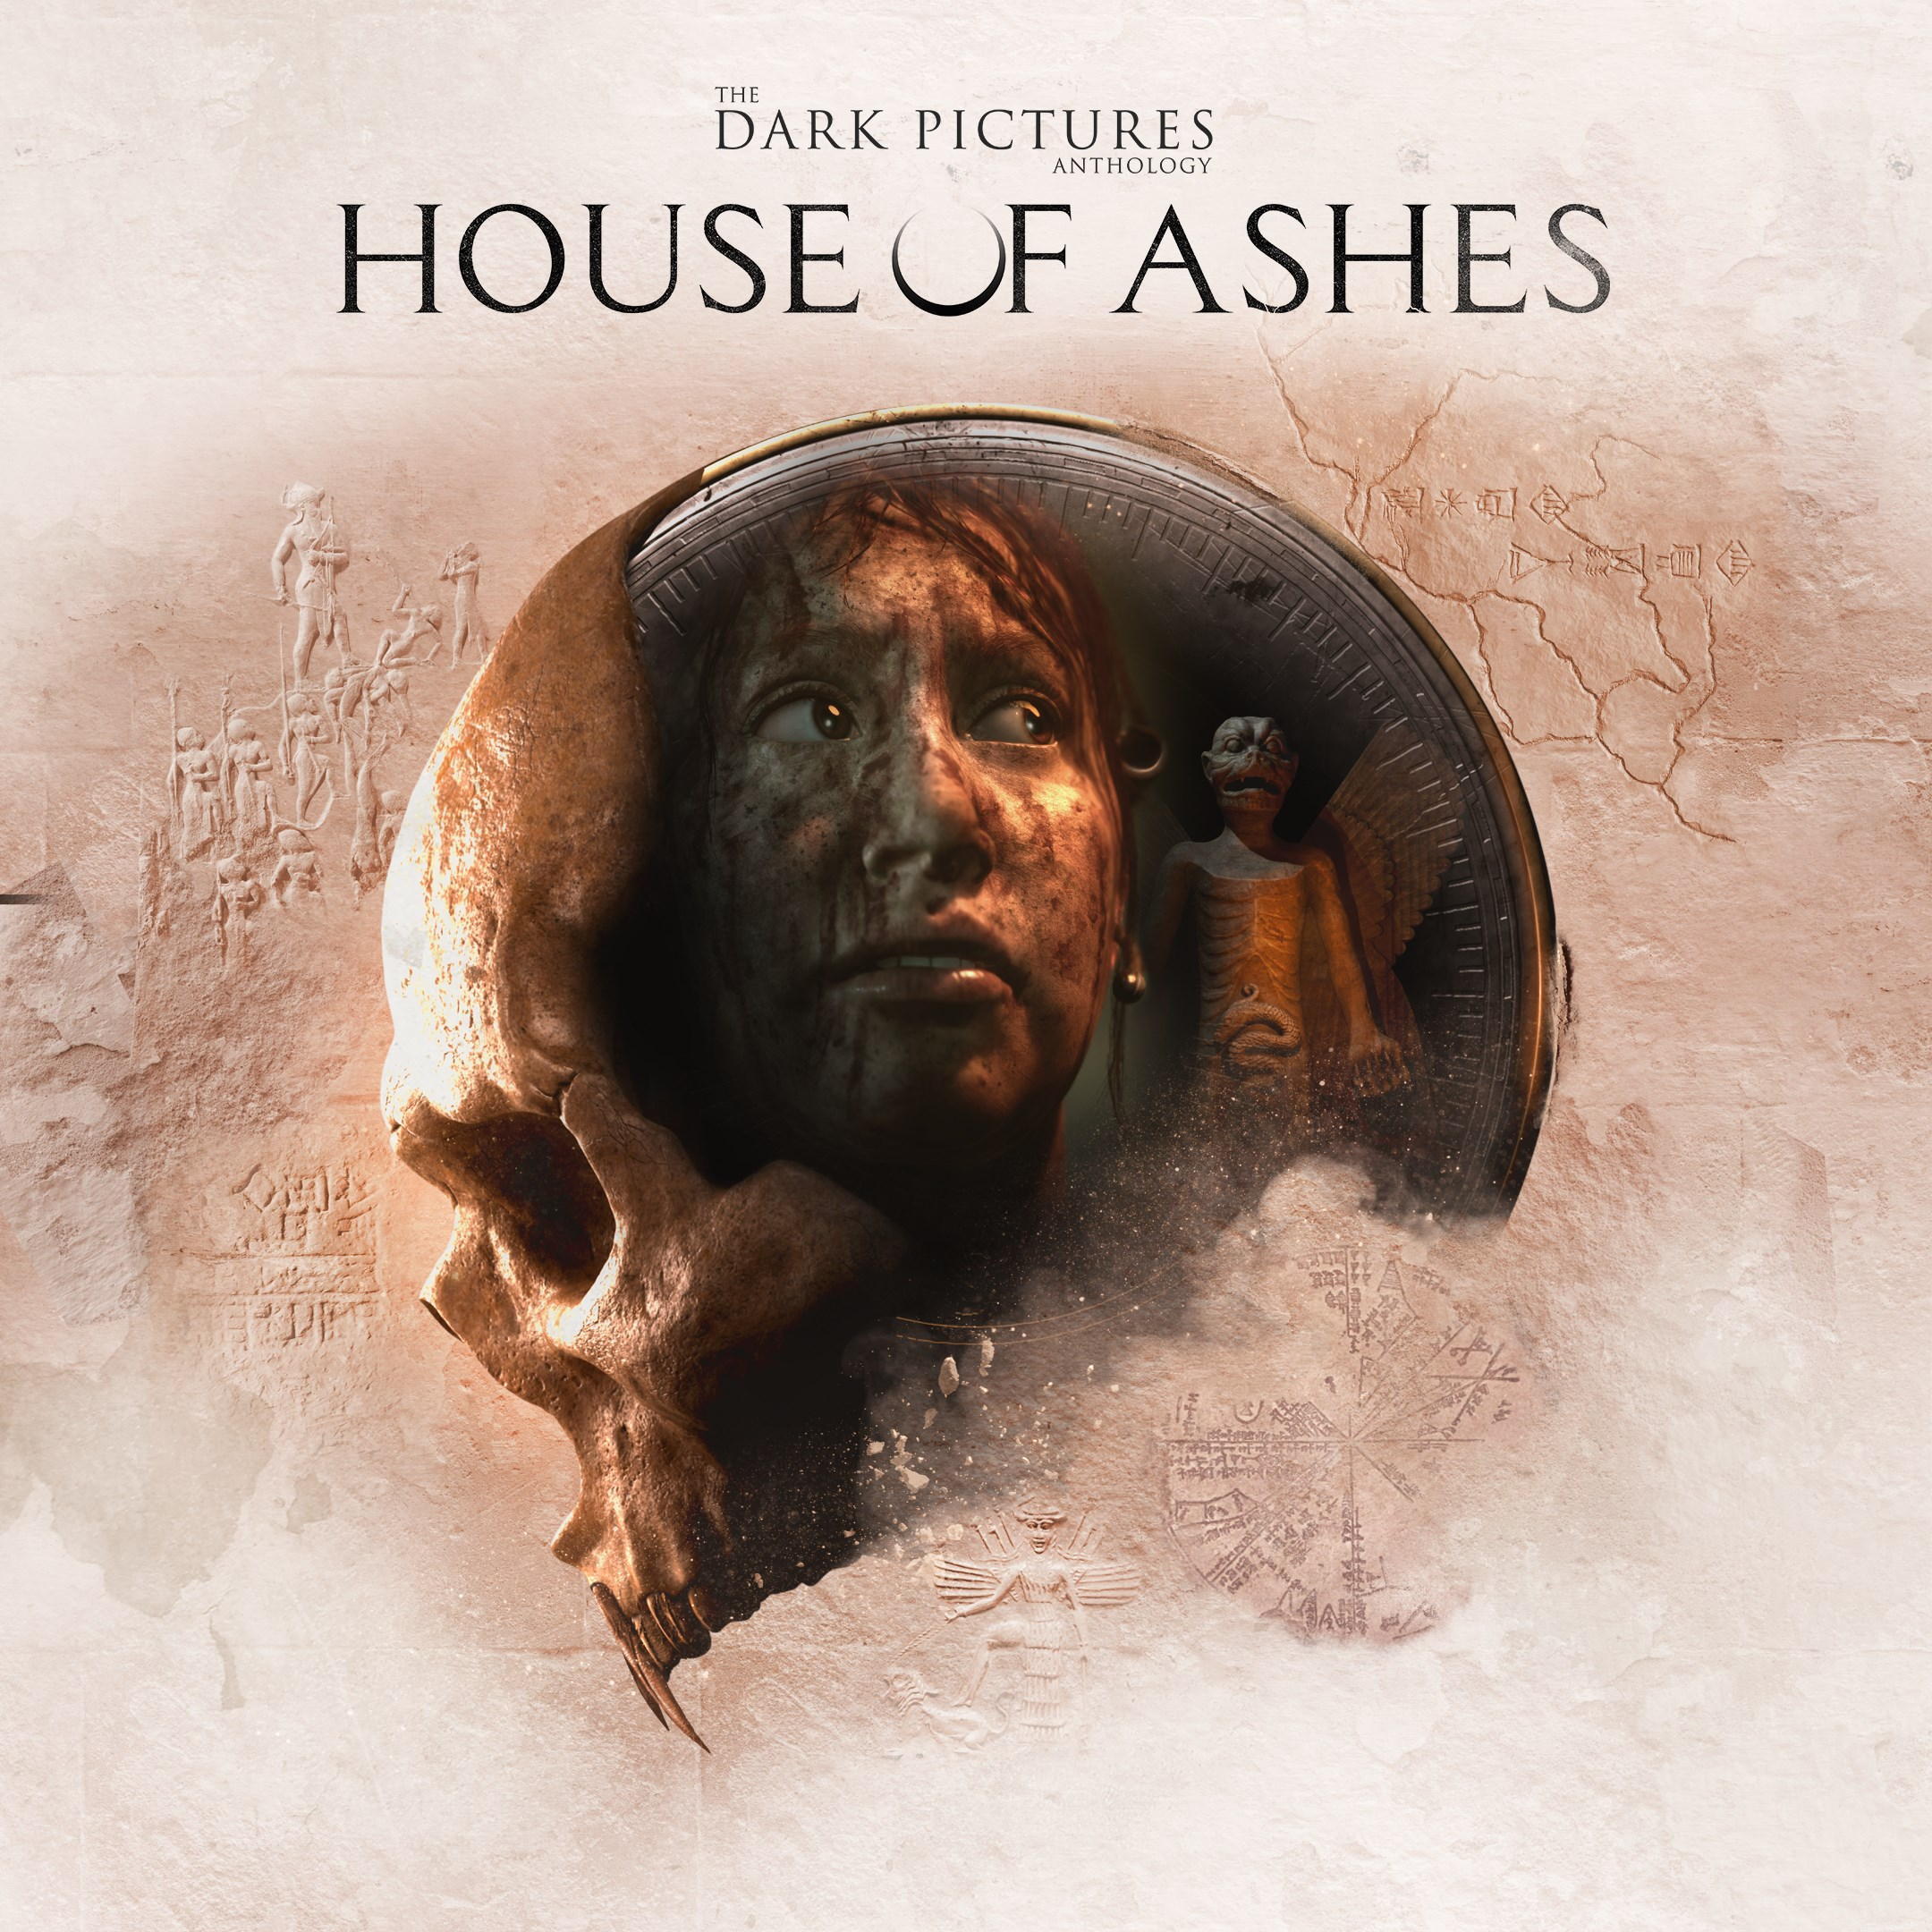 Image for The Dark Pictures Anthology: House of Ashes